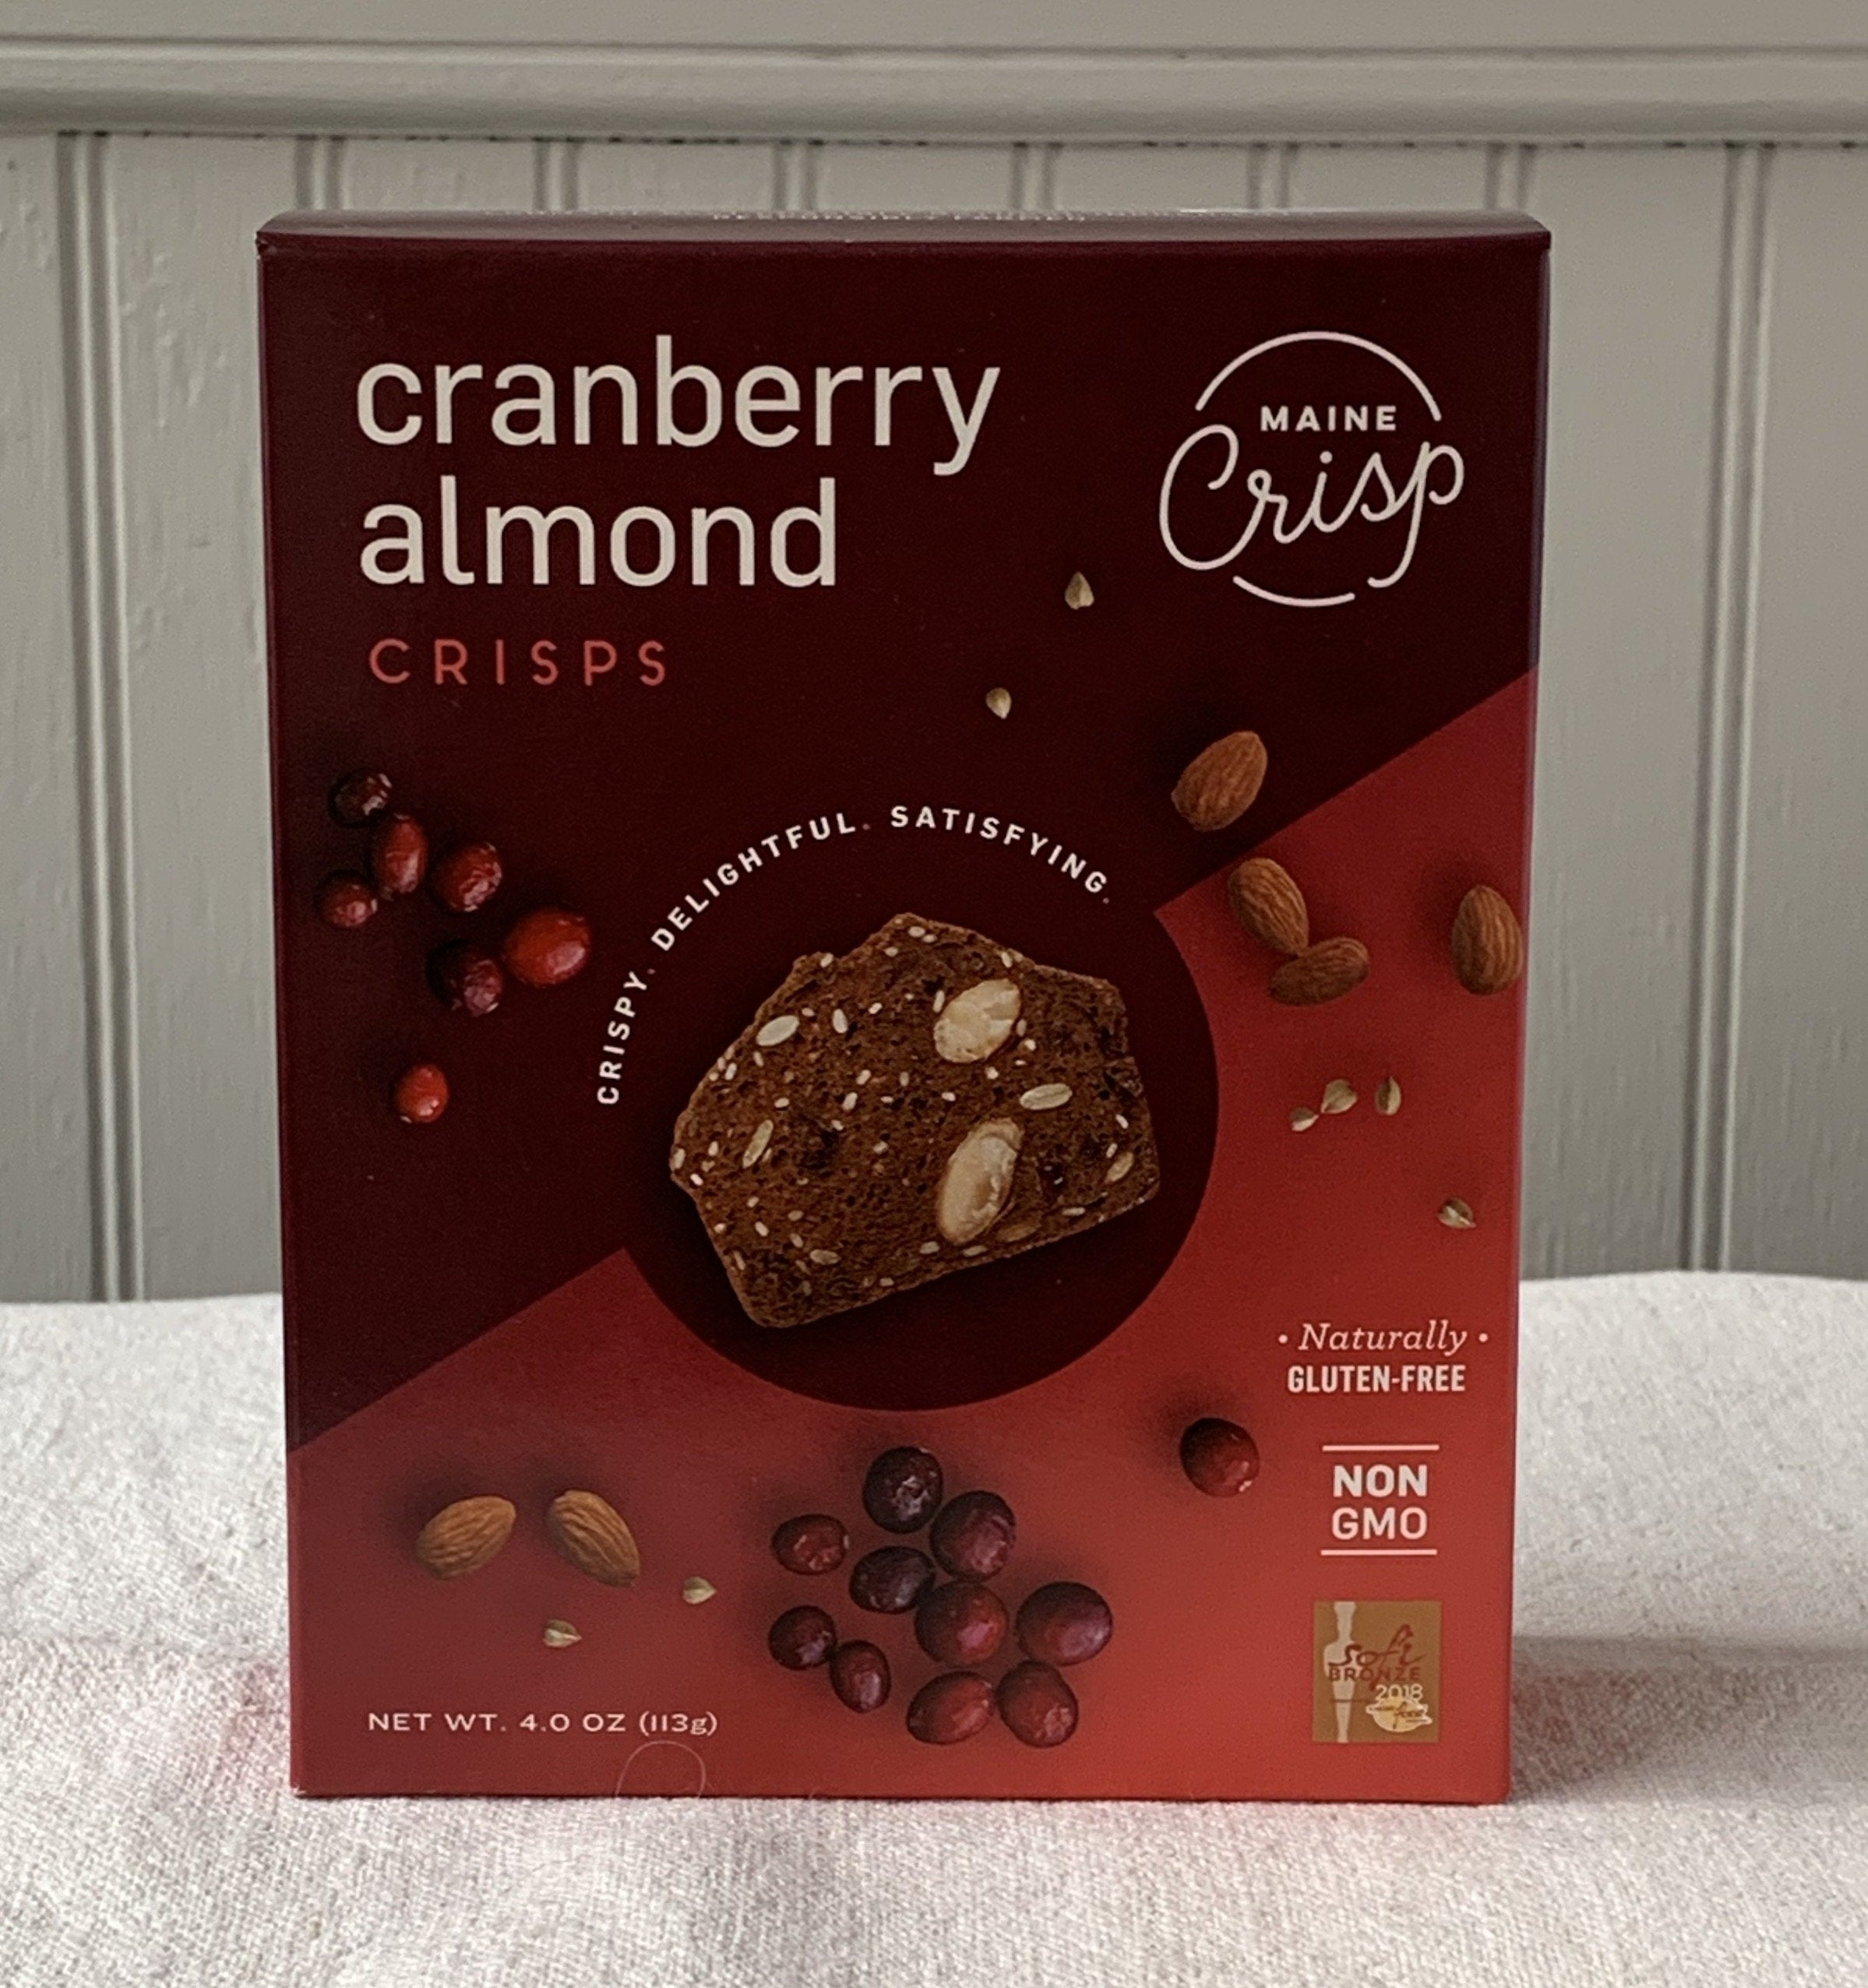 Cranberry Almond Crips